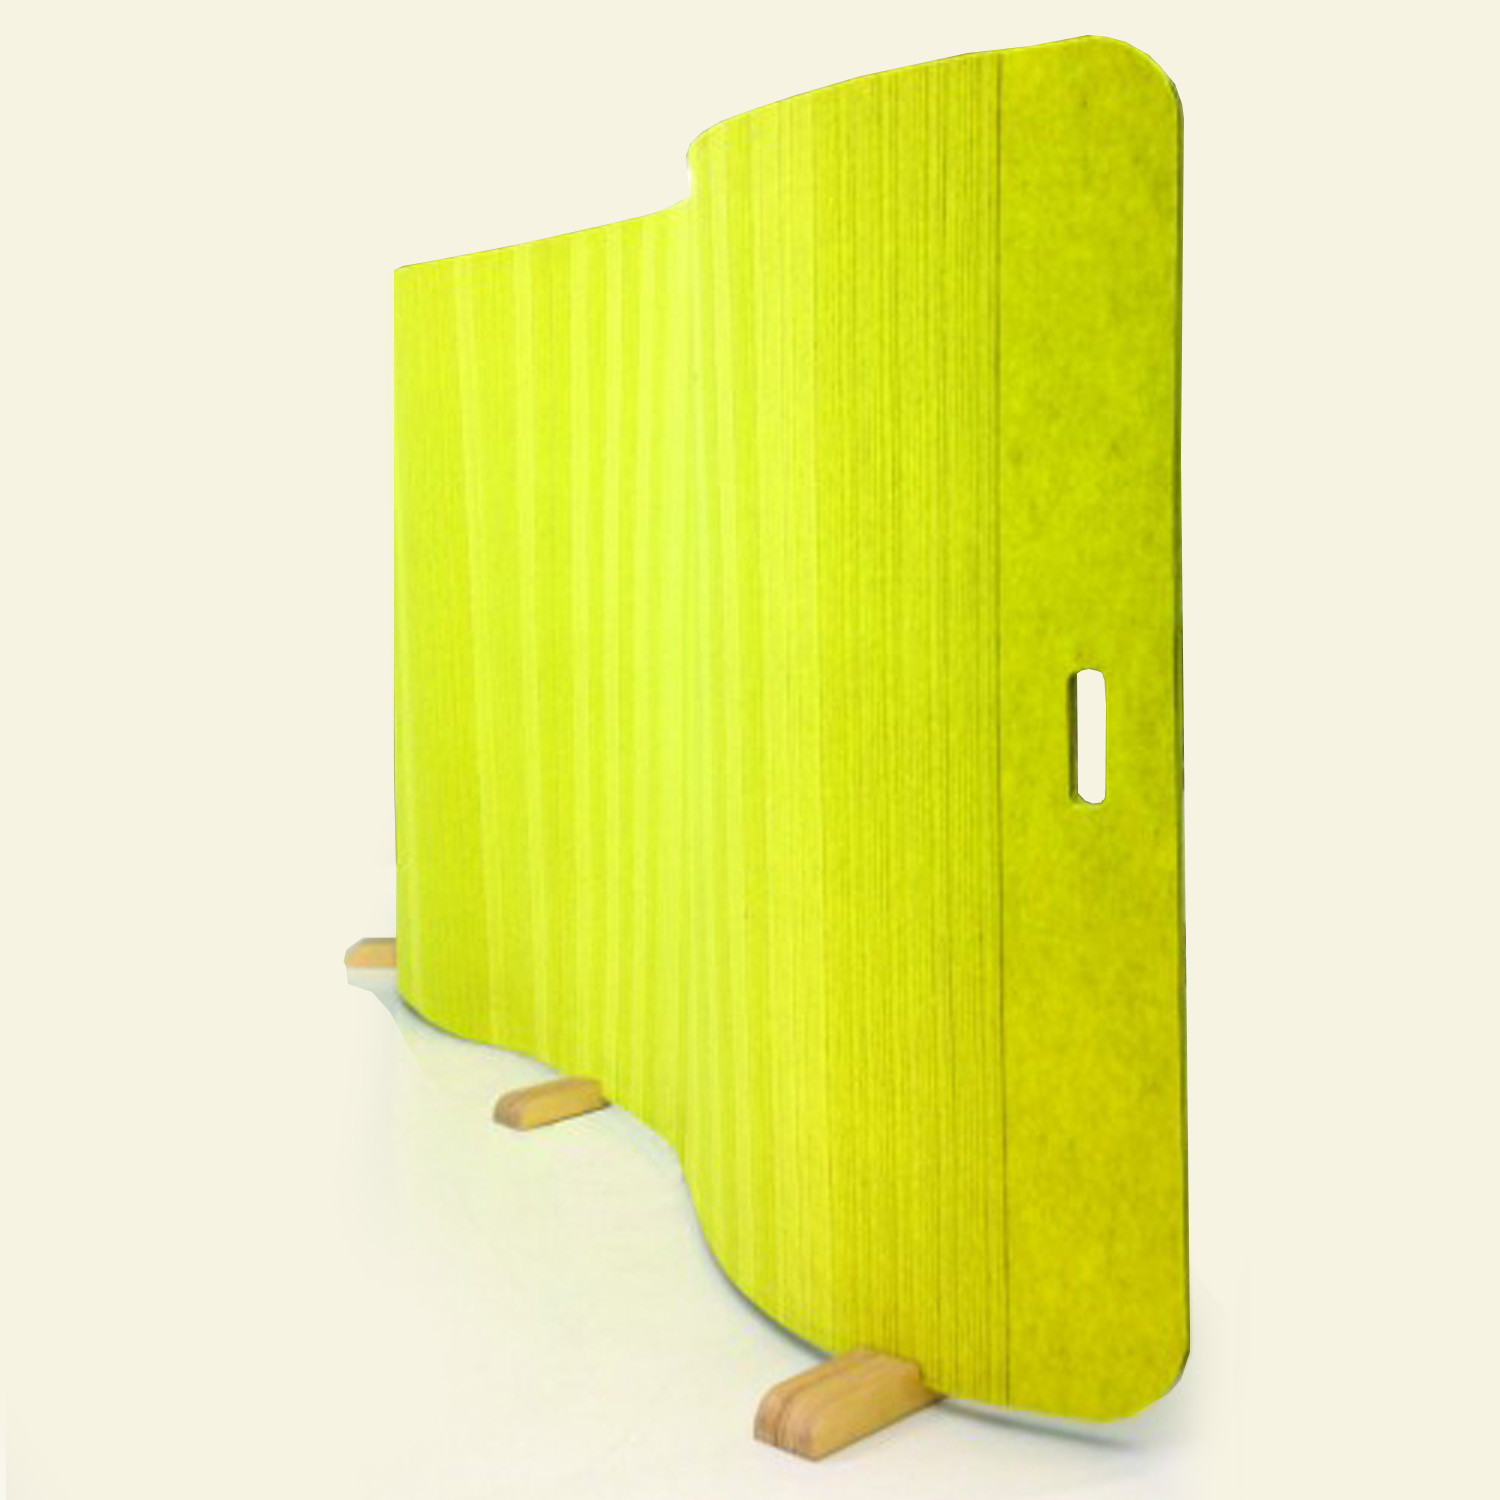 BuzziTwist Room Divider by BuzziSpace